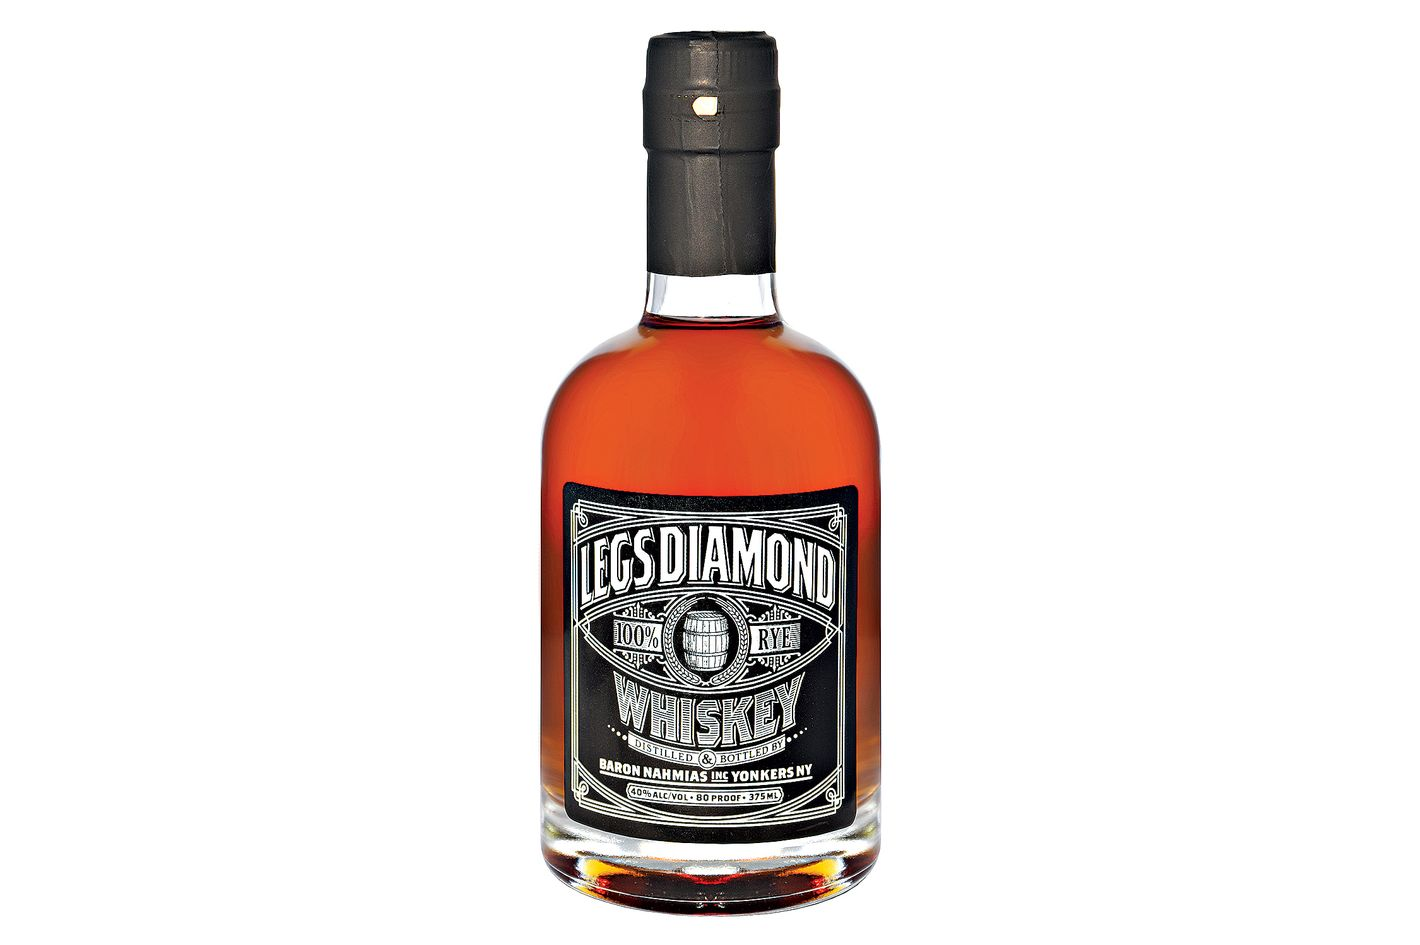 Half-Bottle of Nahmias Legs Diamond Rye Whiskey, Case of 6